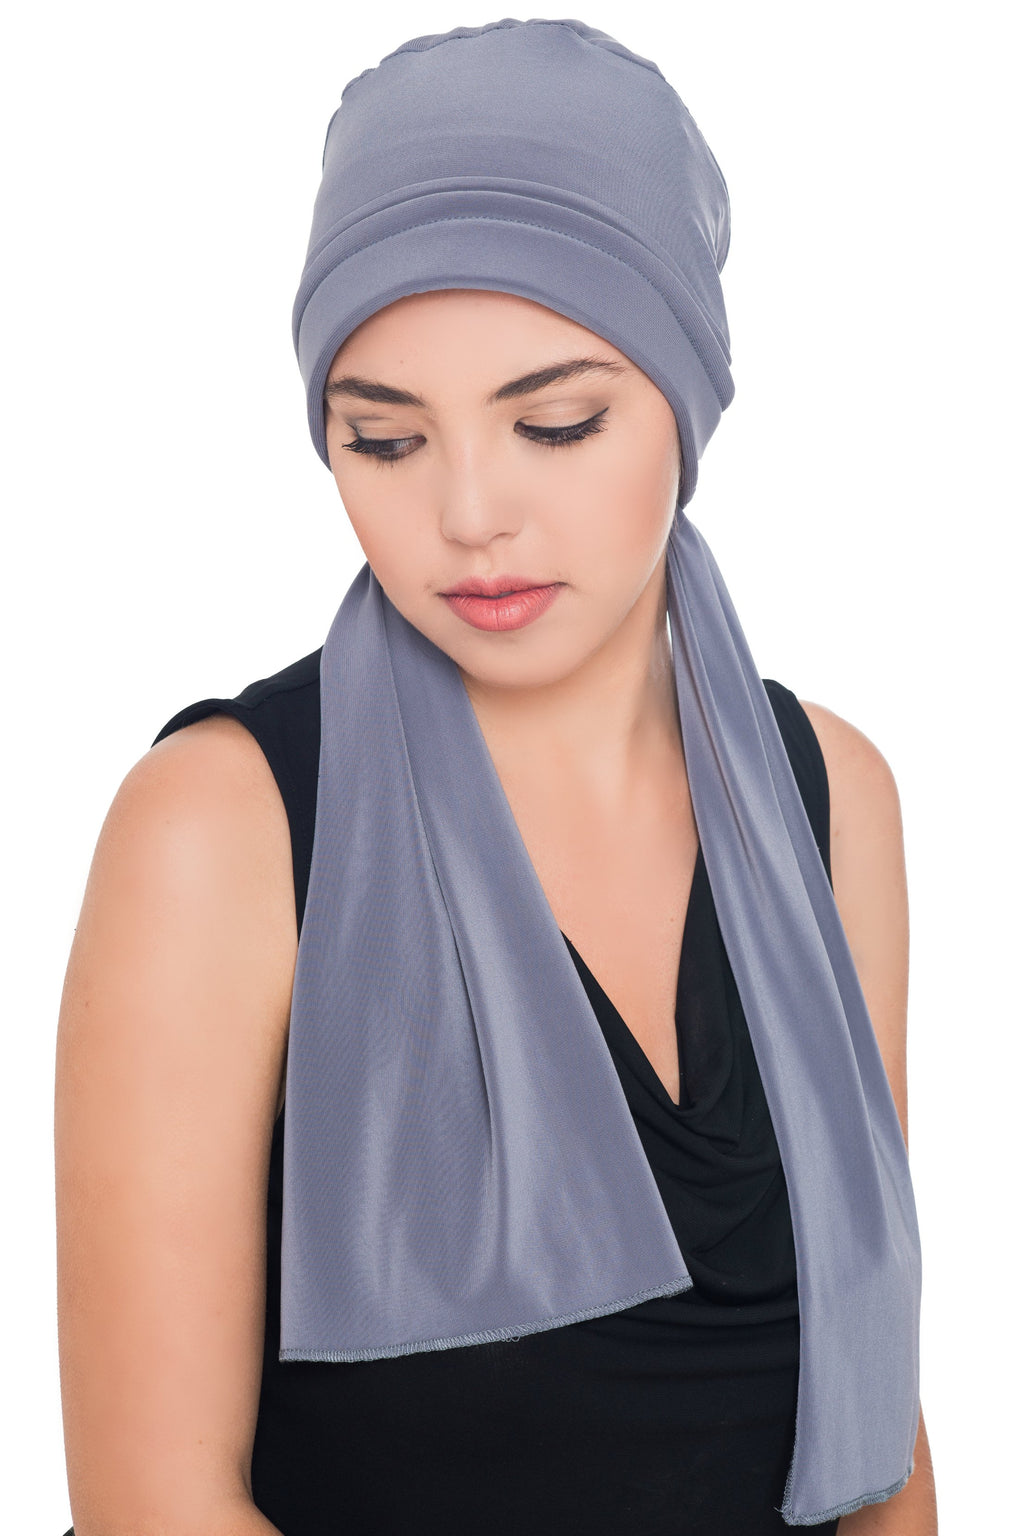 Versatile Headwear with Long Tails - Grey